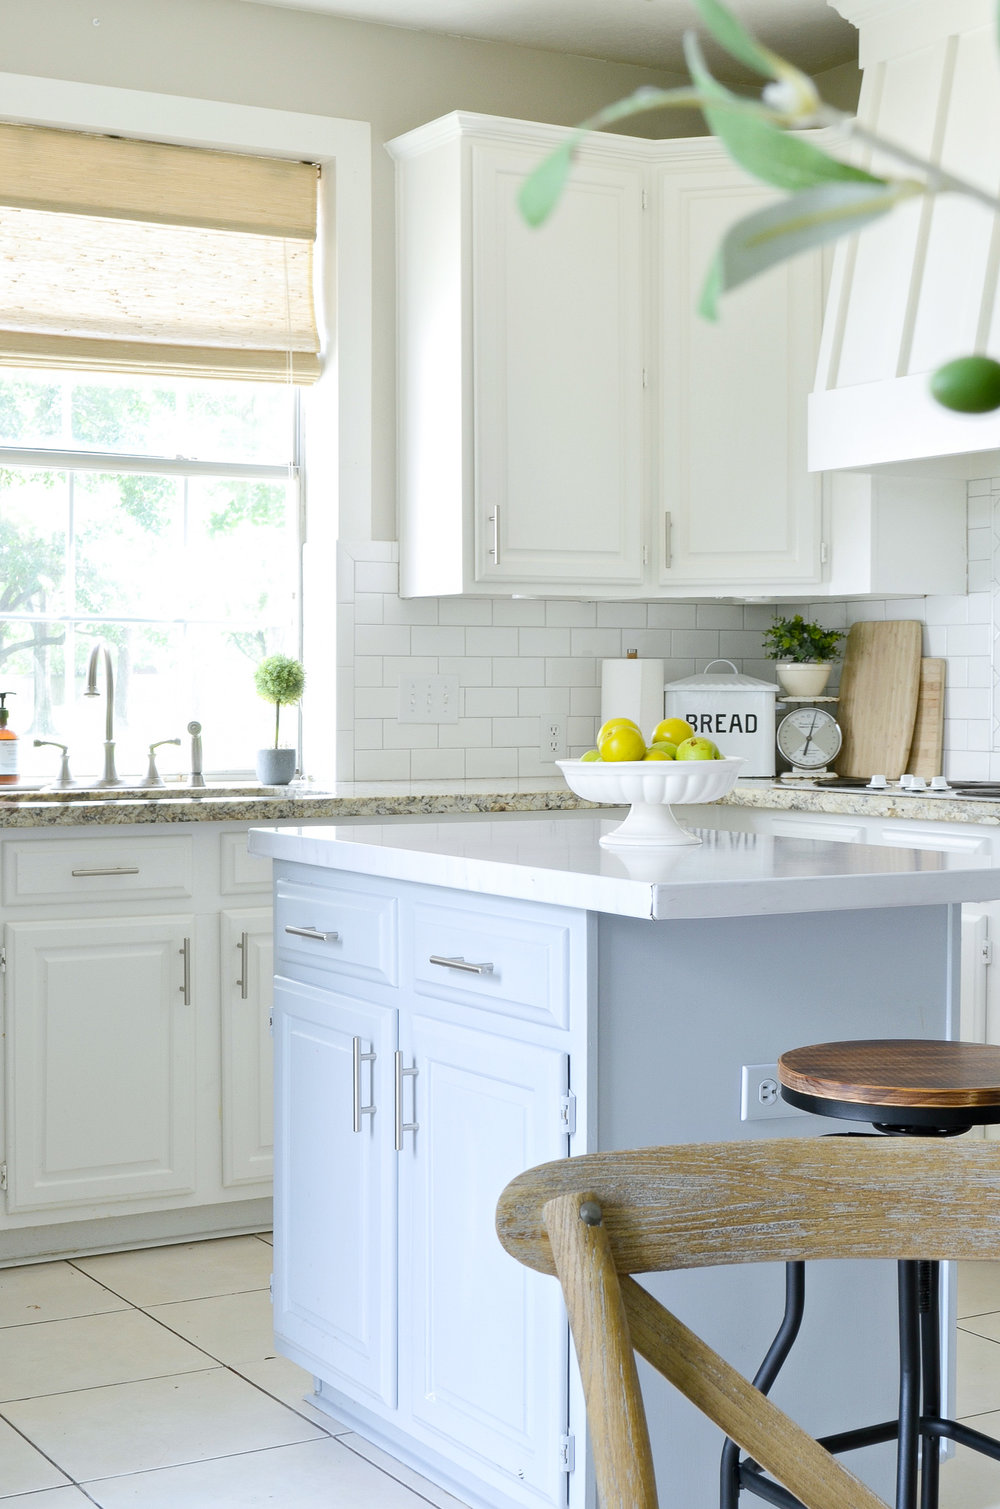 Adding farmhouse charm to the kitchen with woven shades.